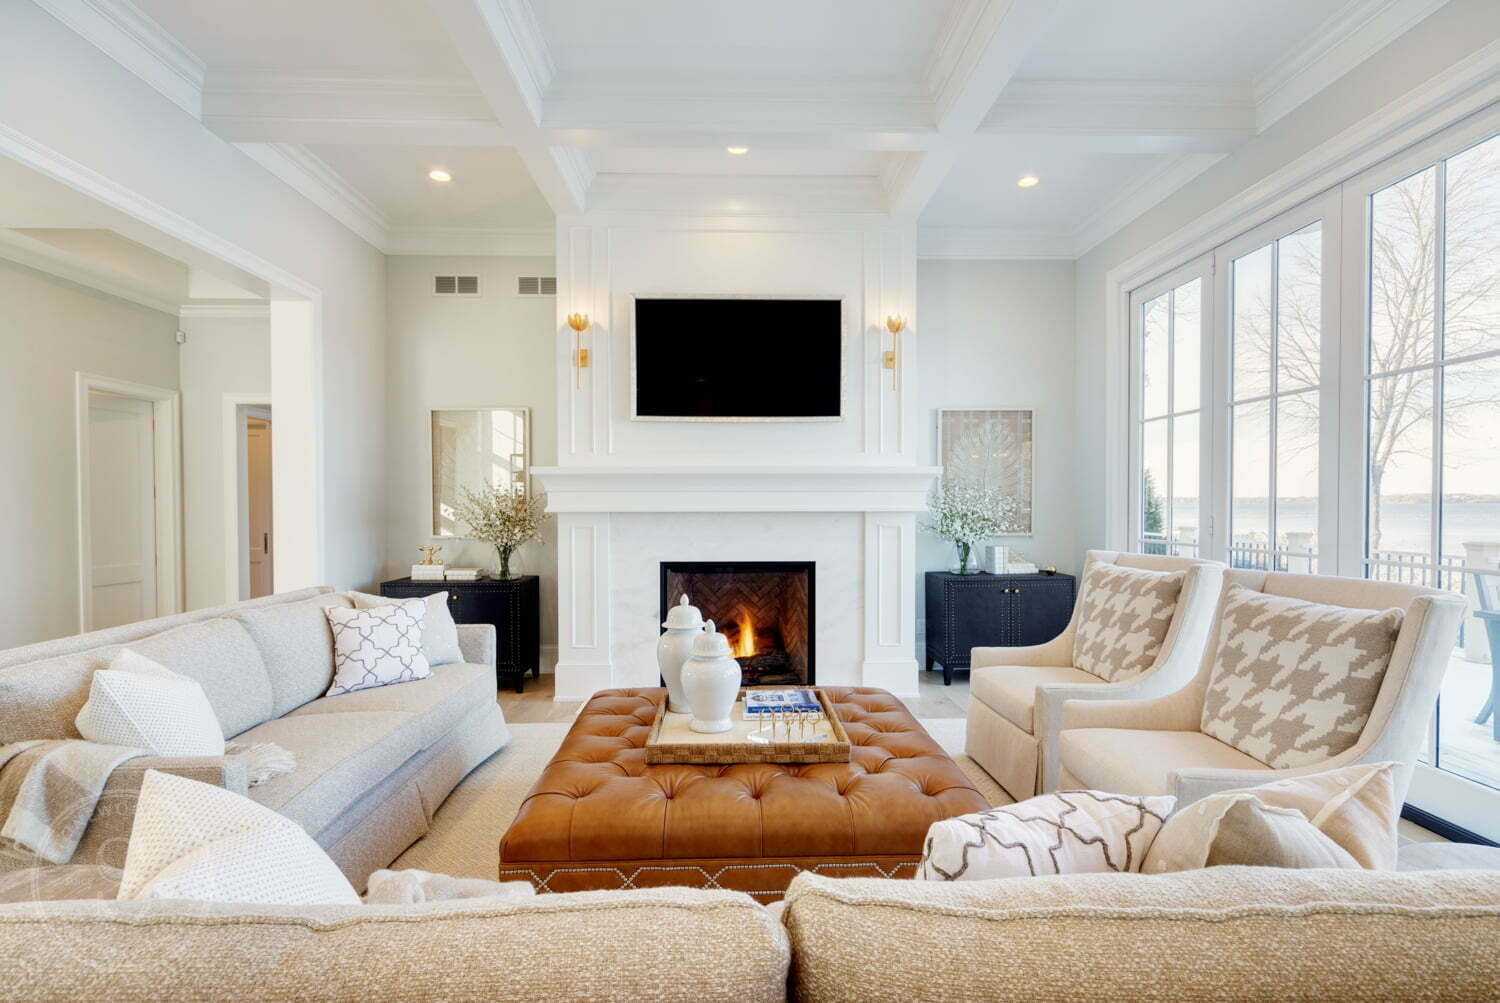 2020 Artisan Home by Stonewood and Revision-10010